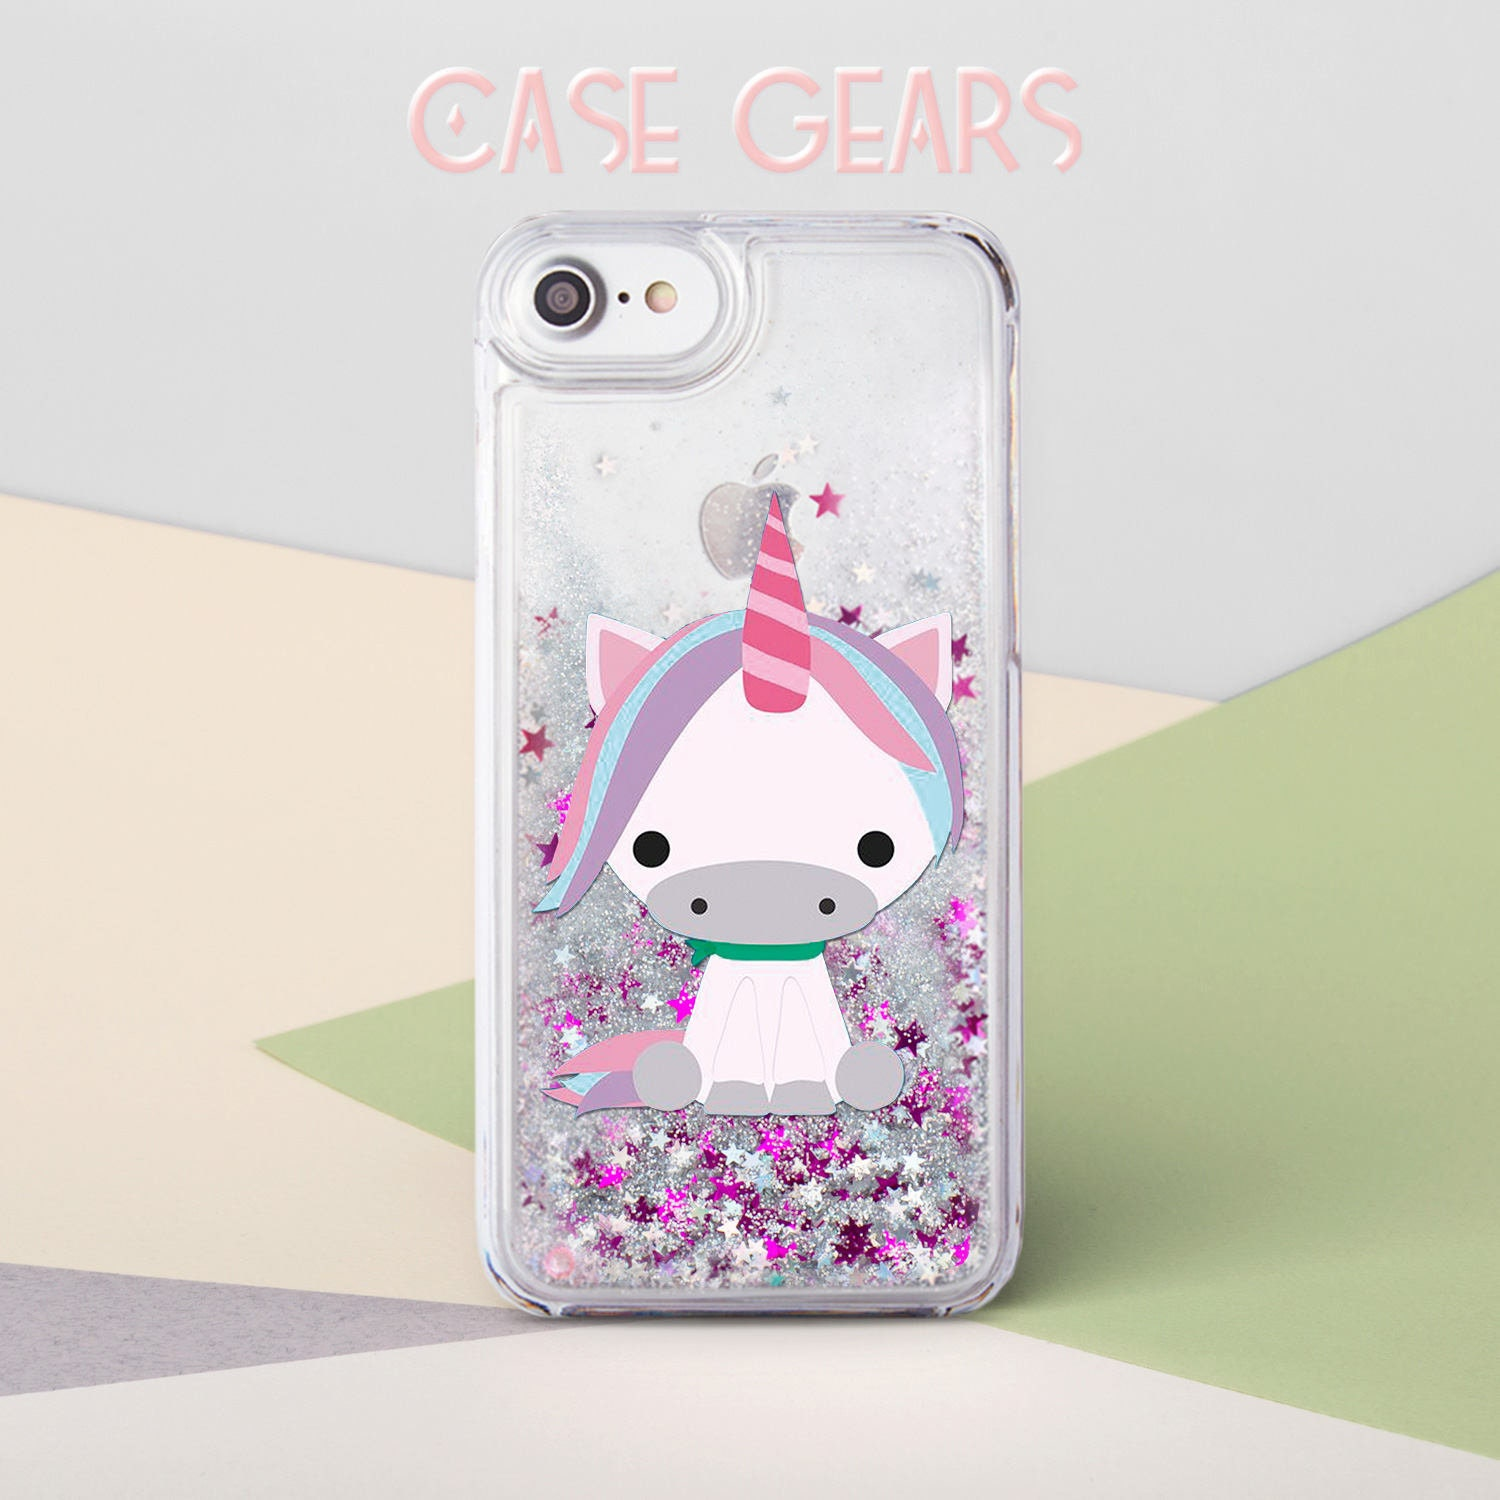 new product 1a146 ce6c0 Unicorn Glitter iPhone 8 Case iPhone 8 Plus Case Pony iPhone 7 Case Cute  Pink Liquid Glitter iPhone 7 Plus Case iPhone 6 Case CG6008